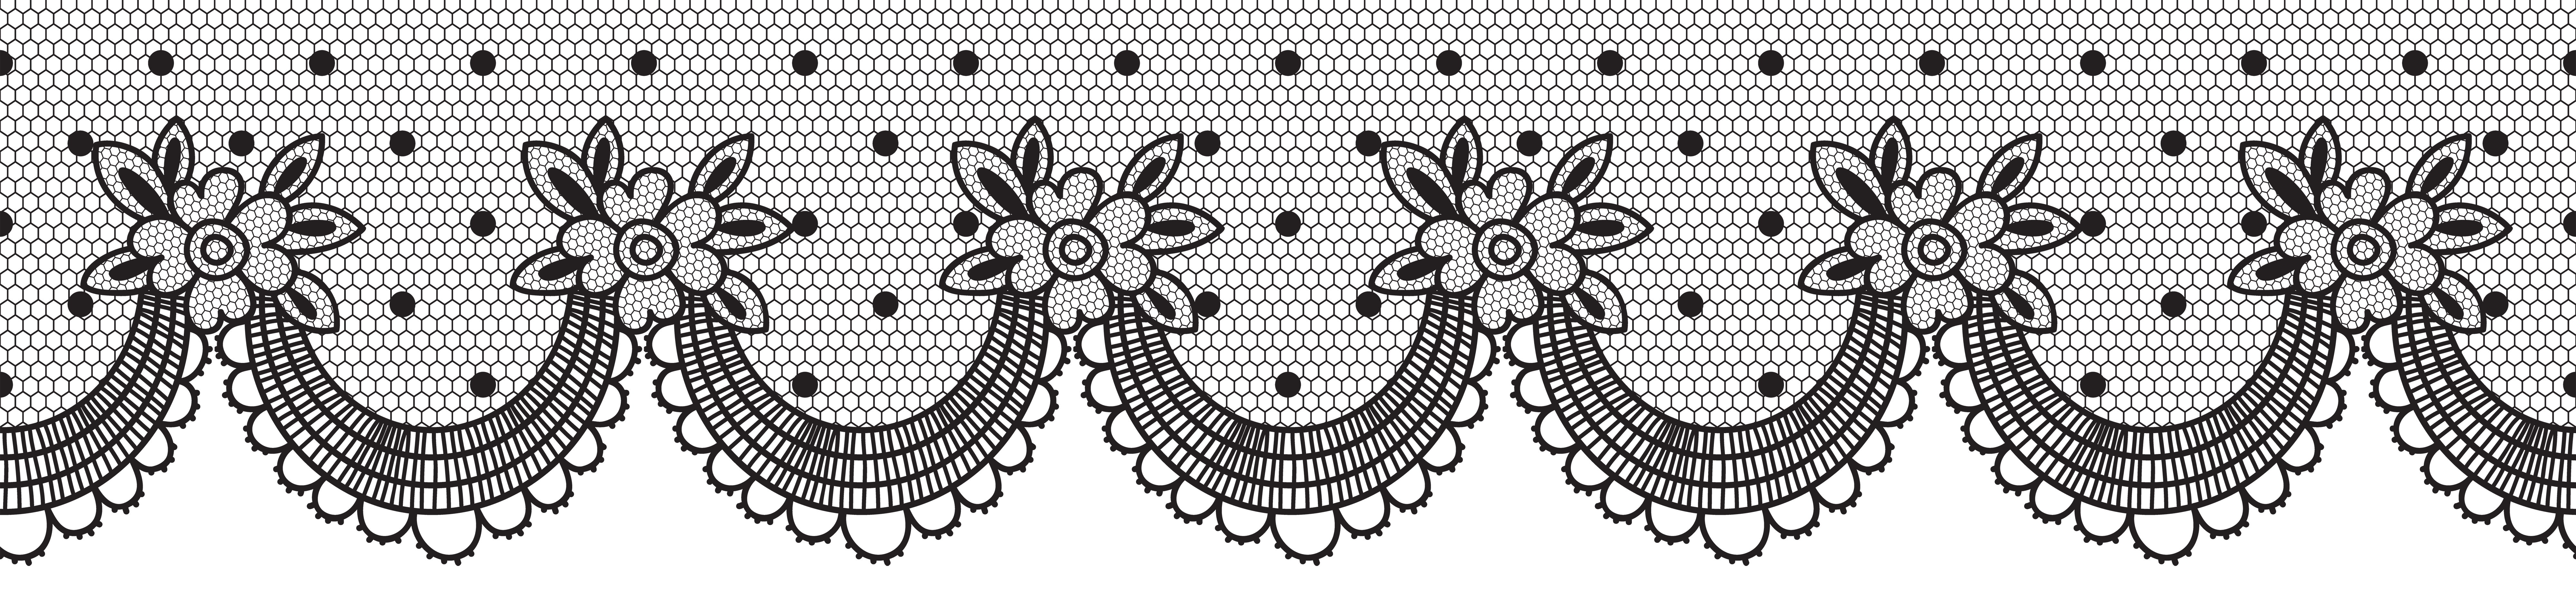 lace clipart scroll